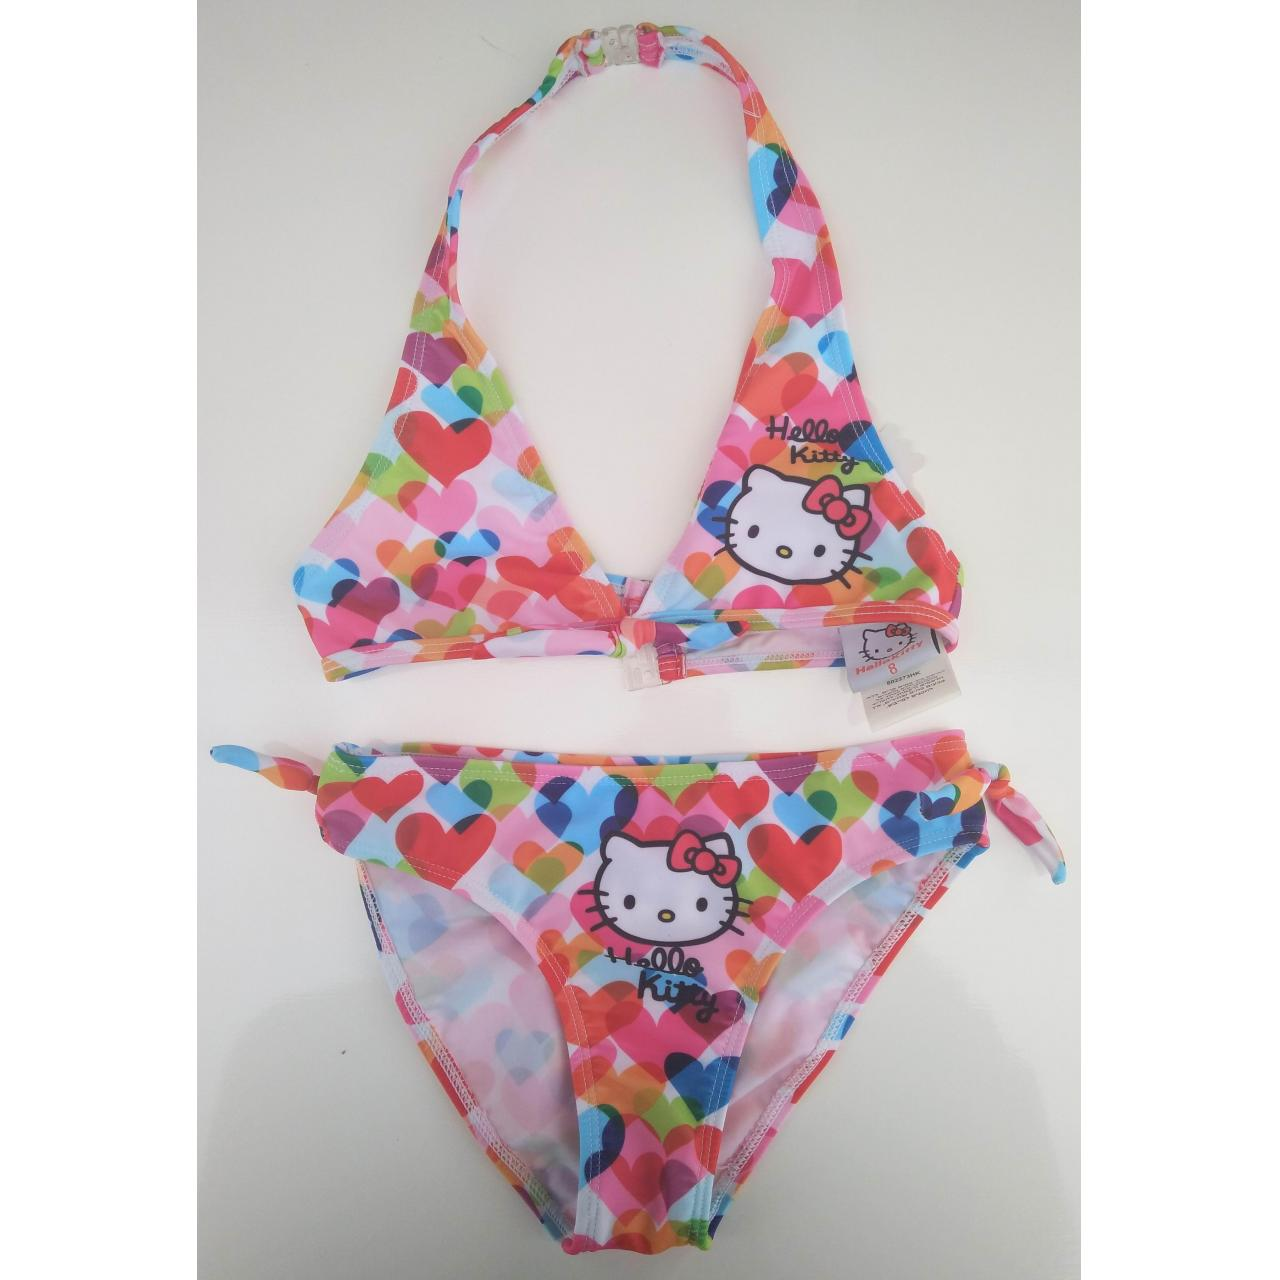 Quality KIDS SWIMSUITS hello kitty and heart print bikini for sale